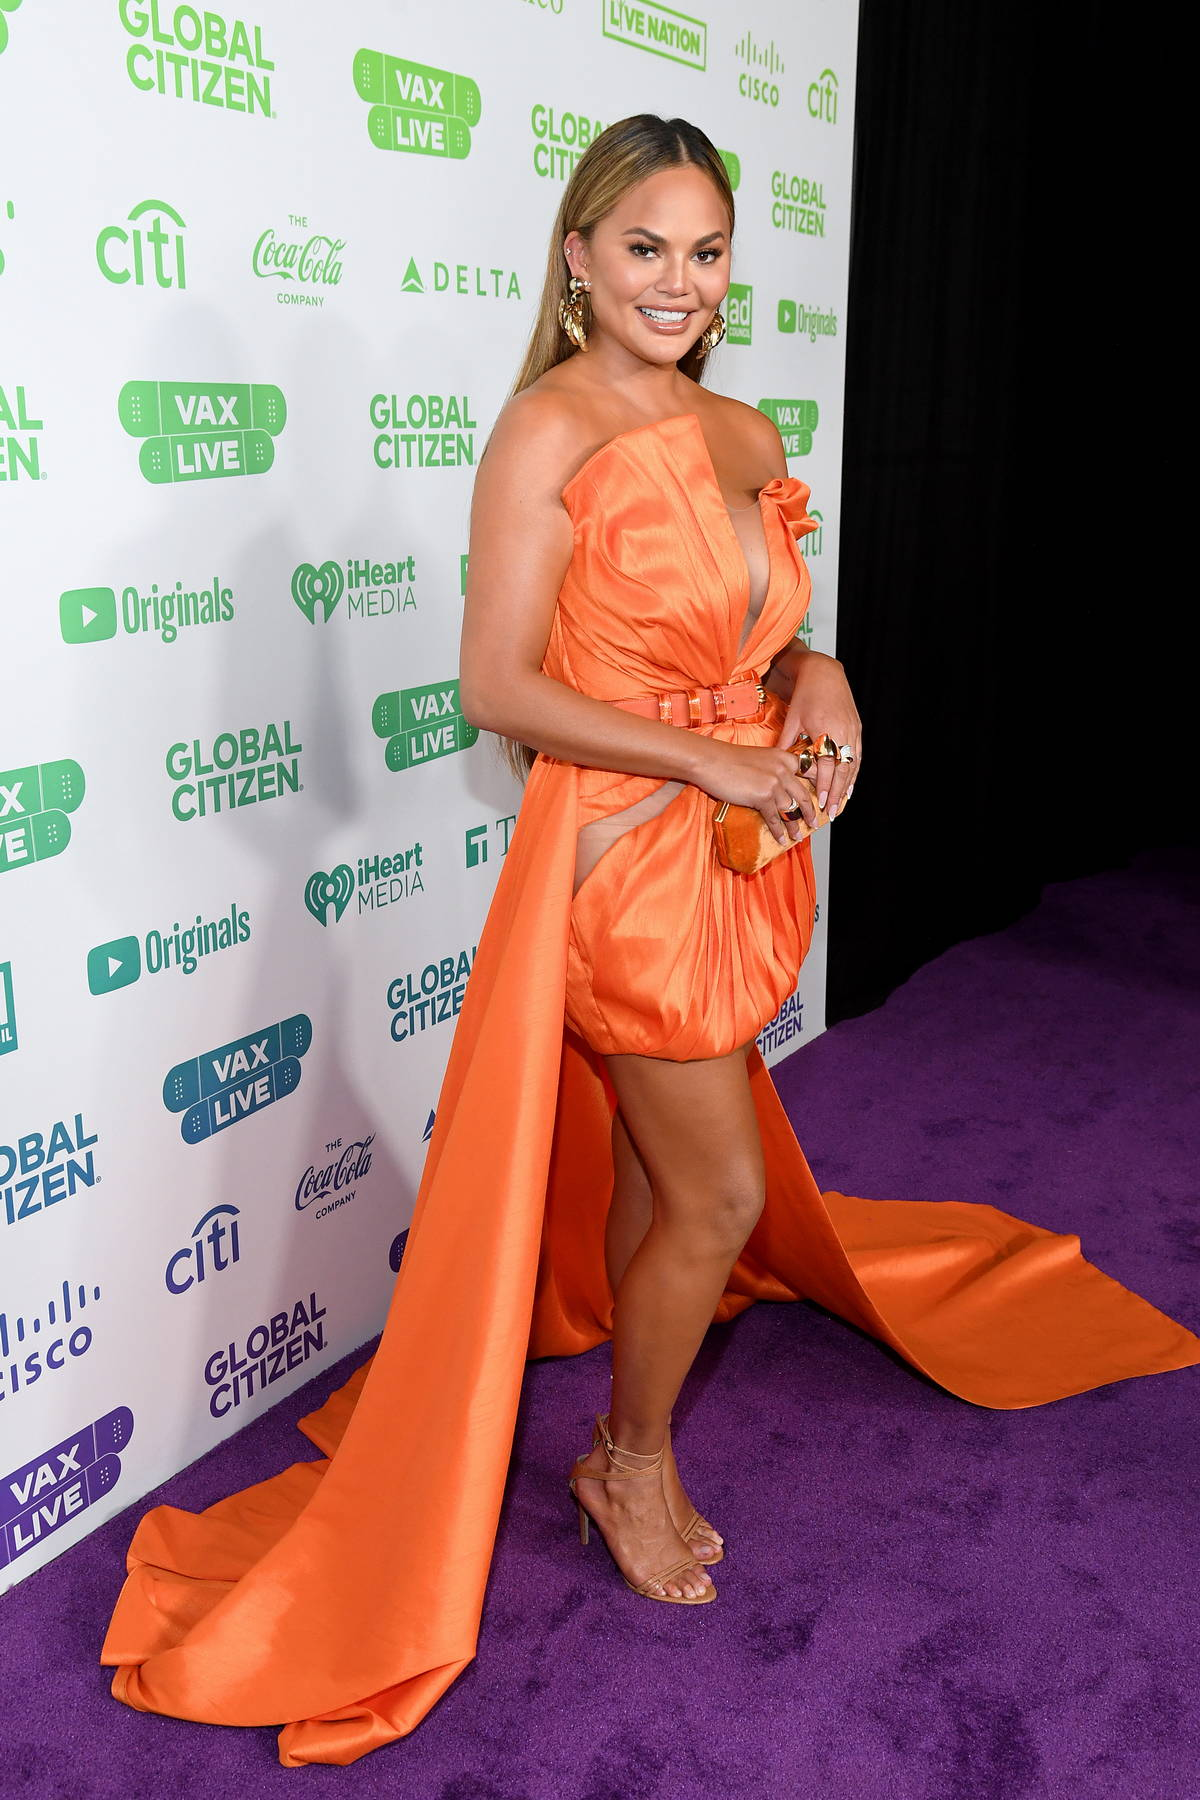 Chrissy Teigen attends Global Citizen Vax Live: The Concert to Reunite the World at SoFi Stadium in Inglewood, California